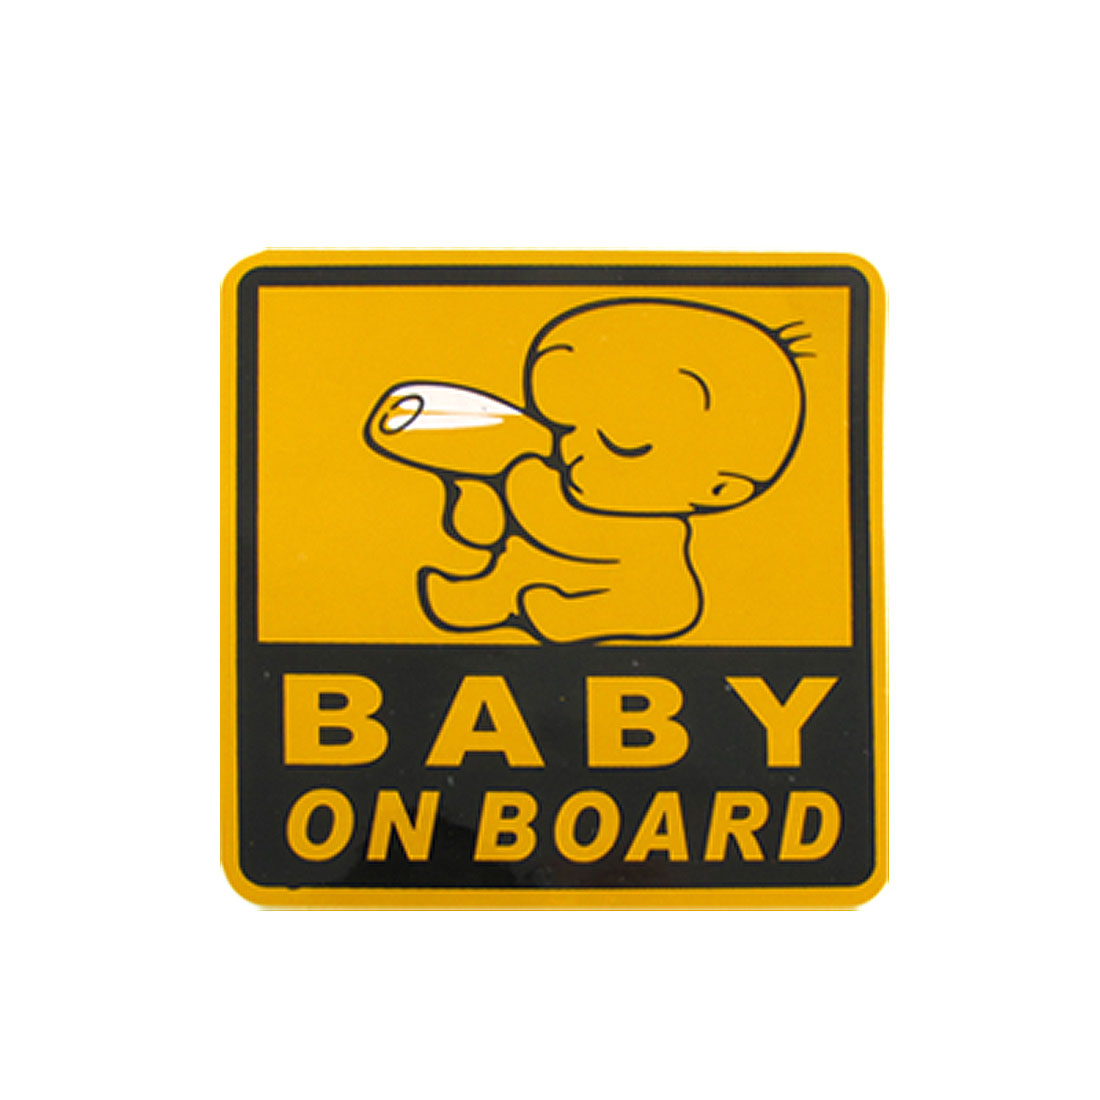 Baby on Board Yellow Black Car Safety Sign PVC Decal Sticker